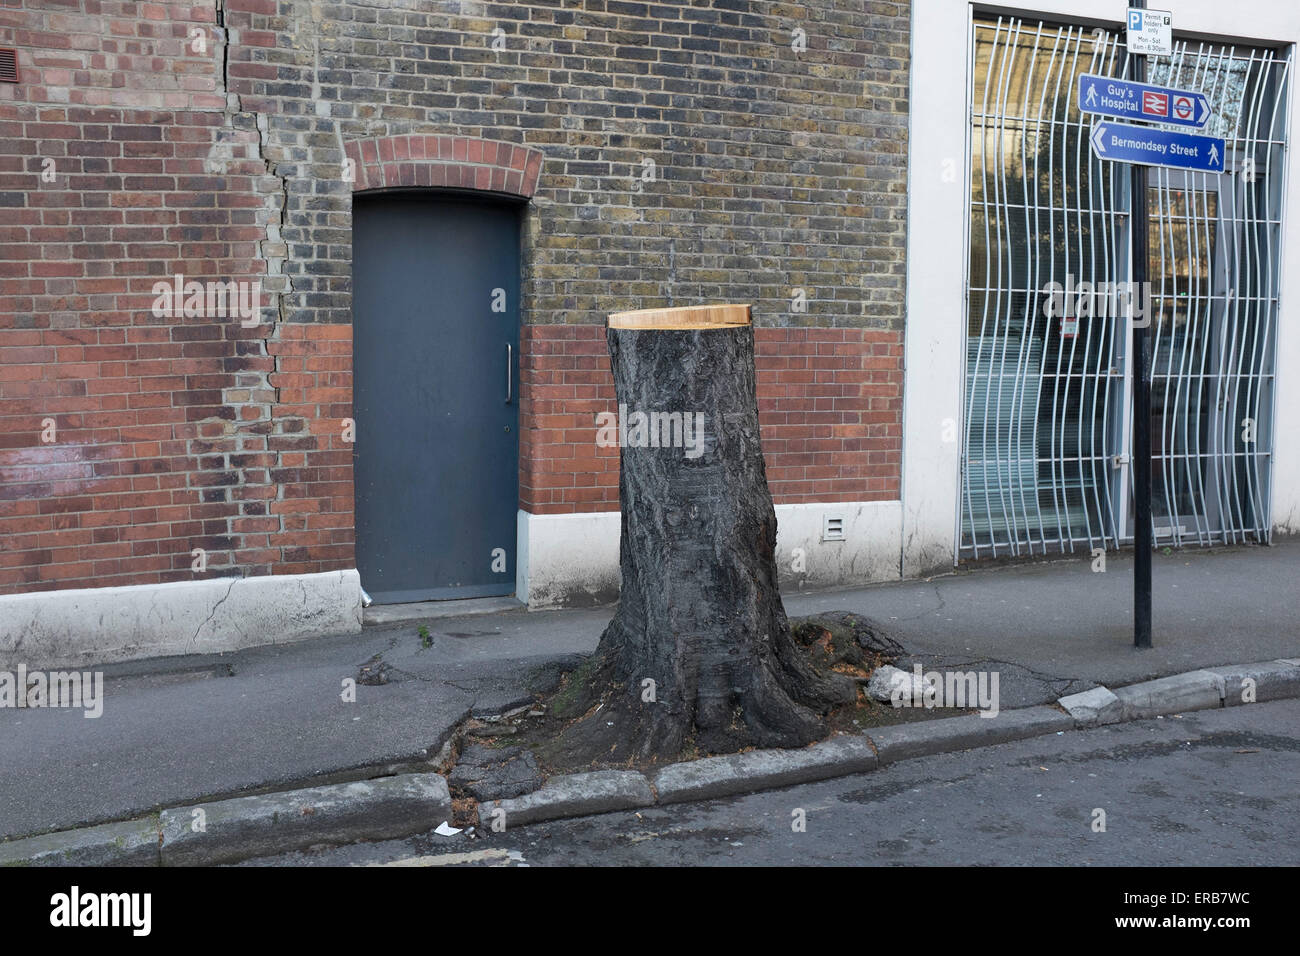 Tree stump growing out of the pavement in Borough, London, UK. The tree has been cut down and is set to be removed Stock Photo